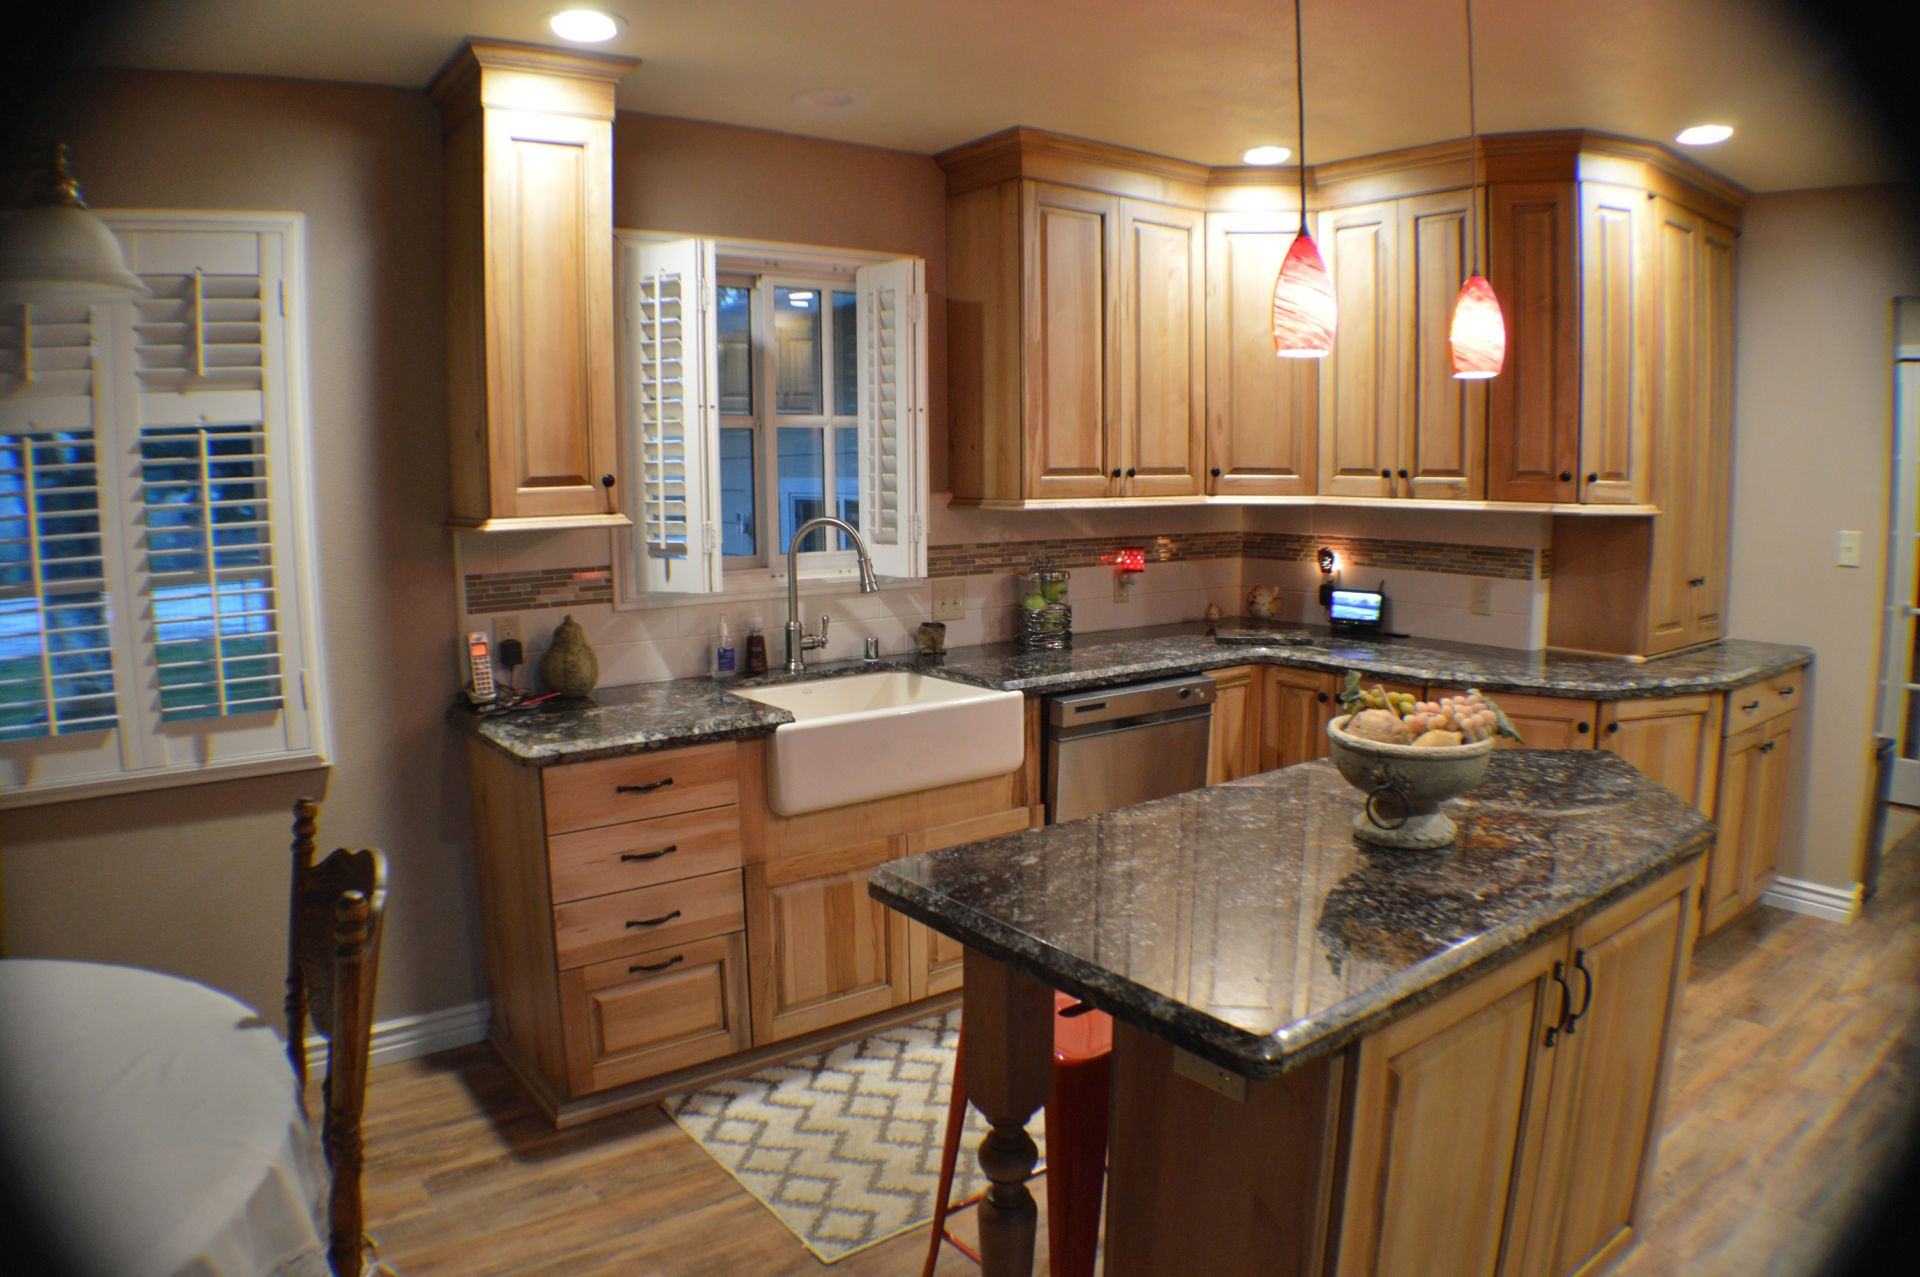 specializing in kitchen and bathroom remodel